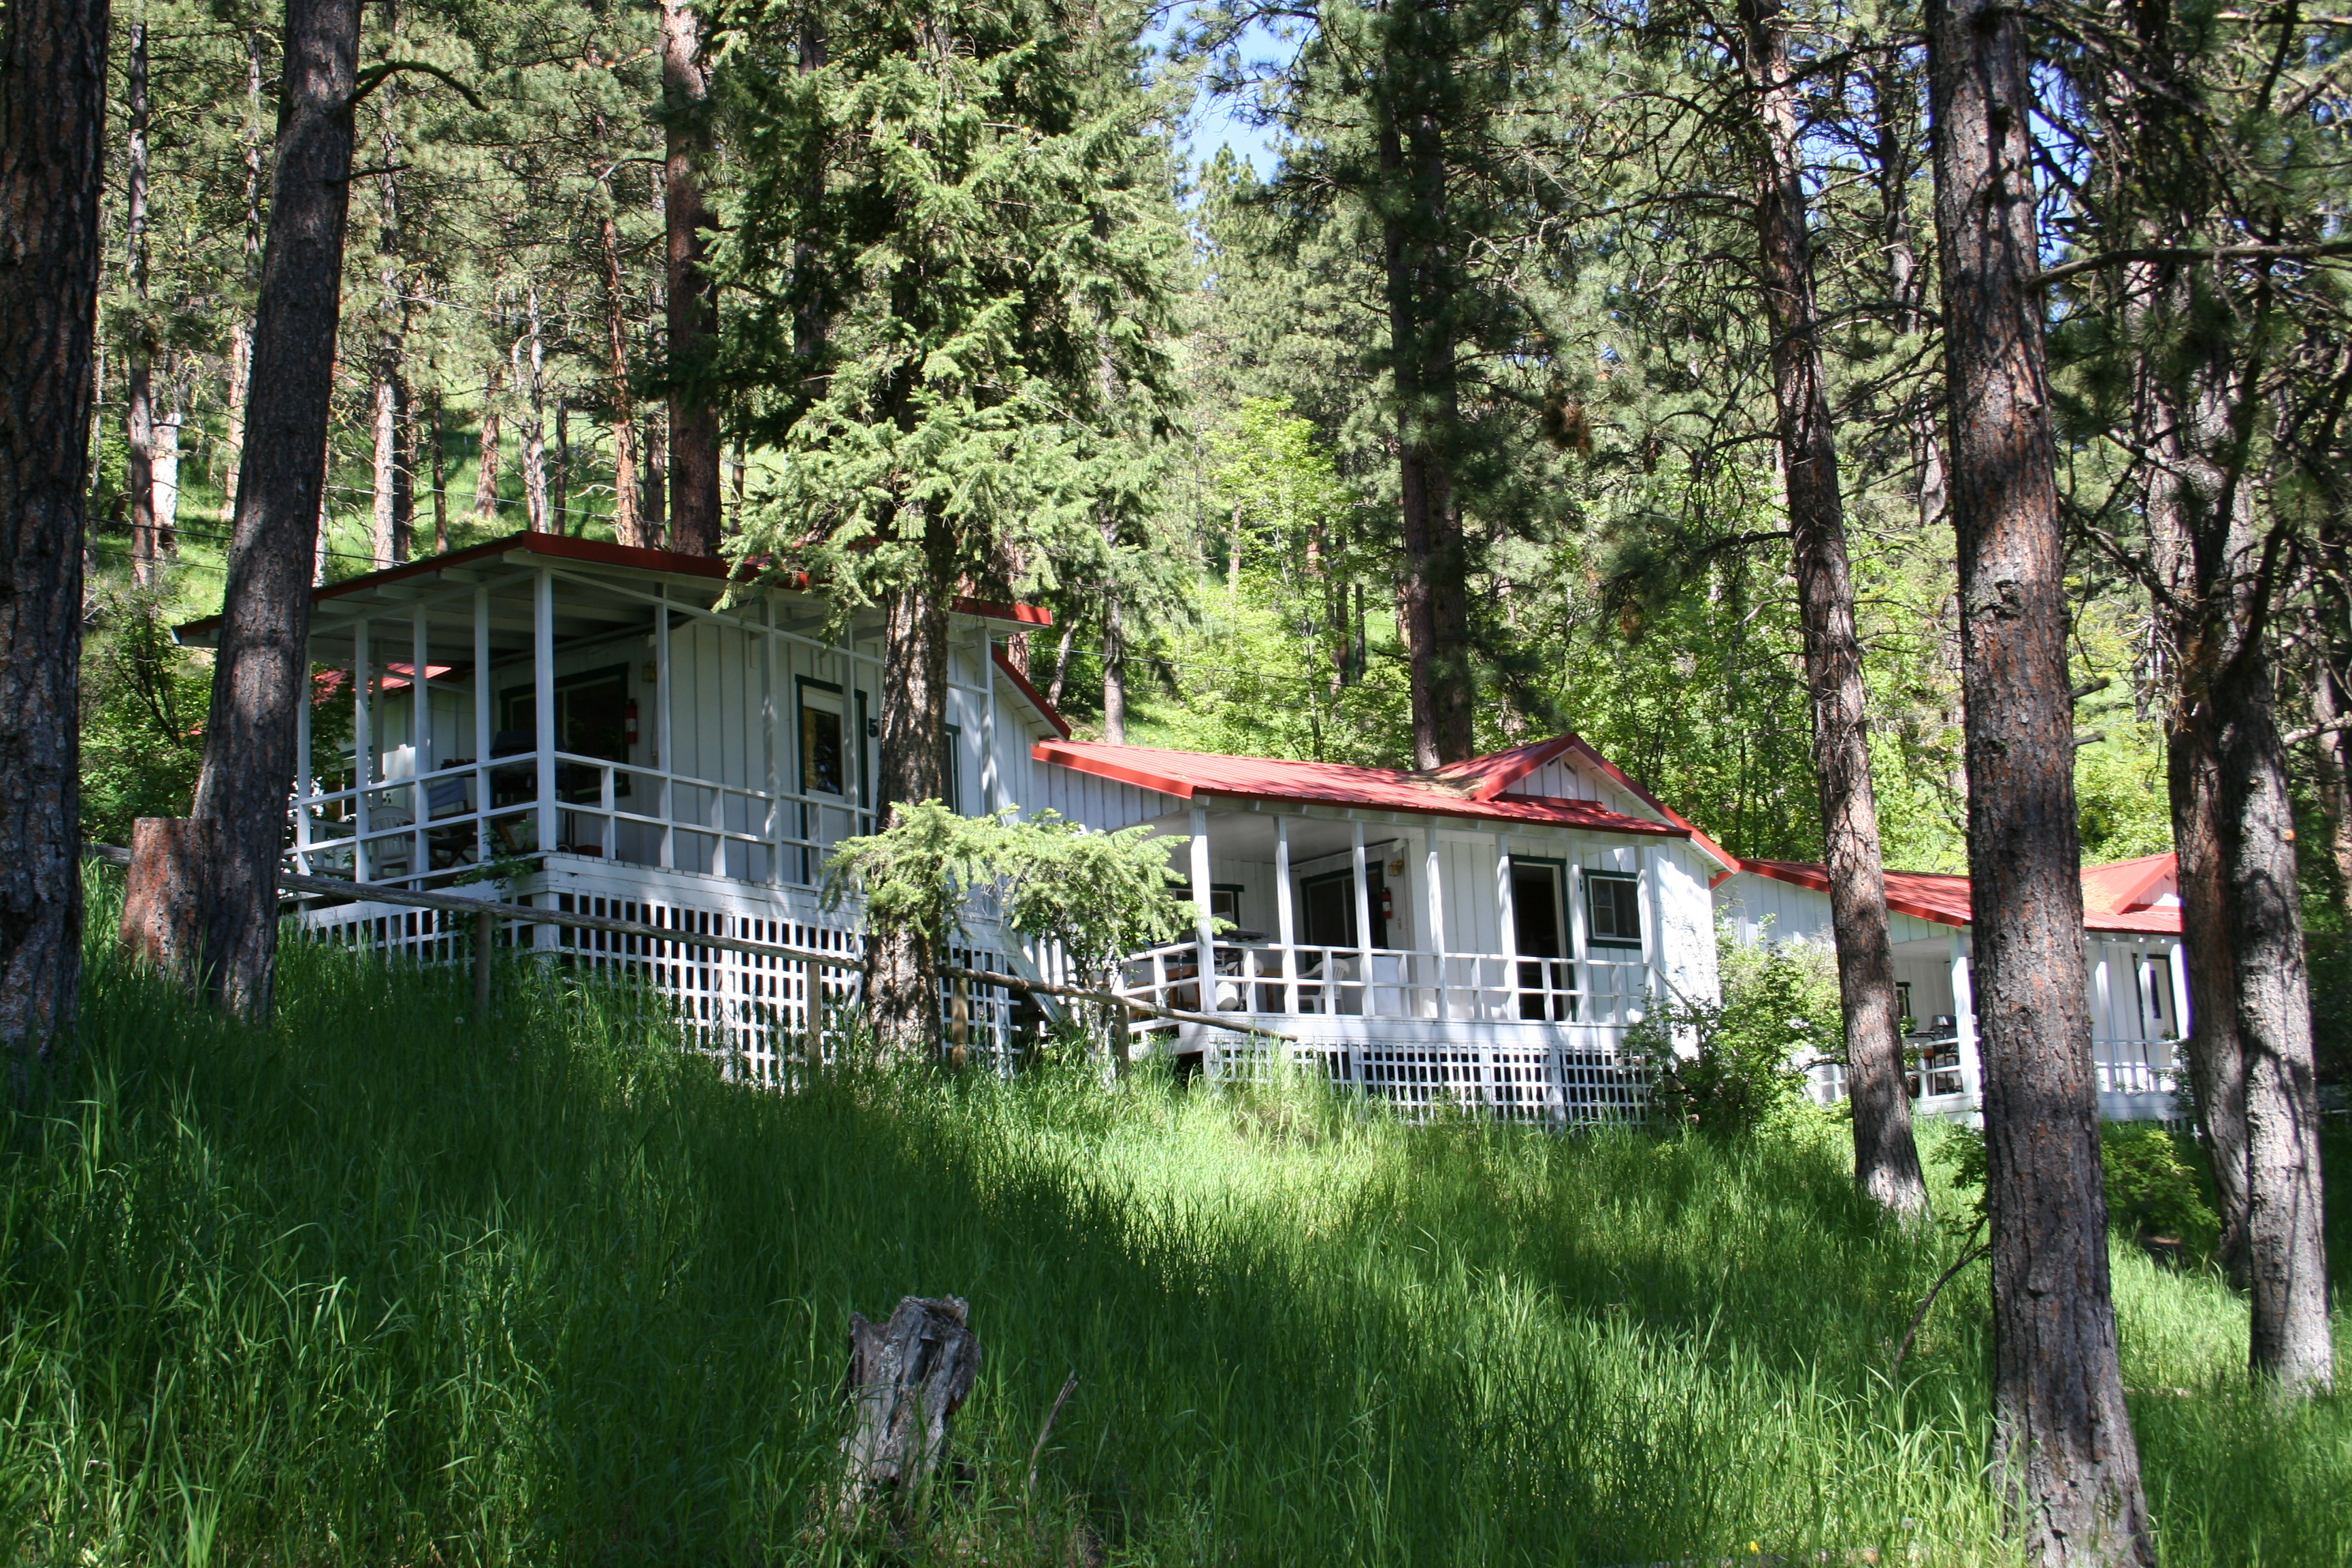 cabins among the trees